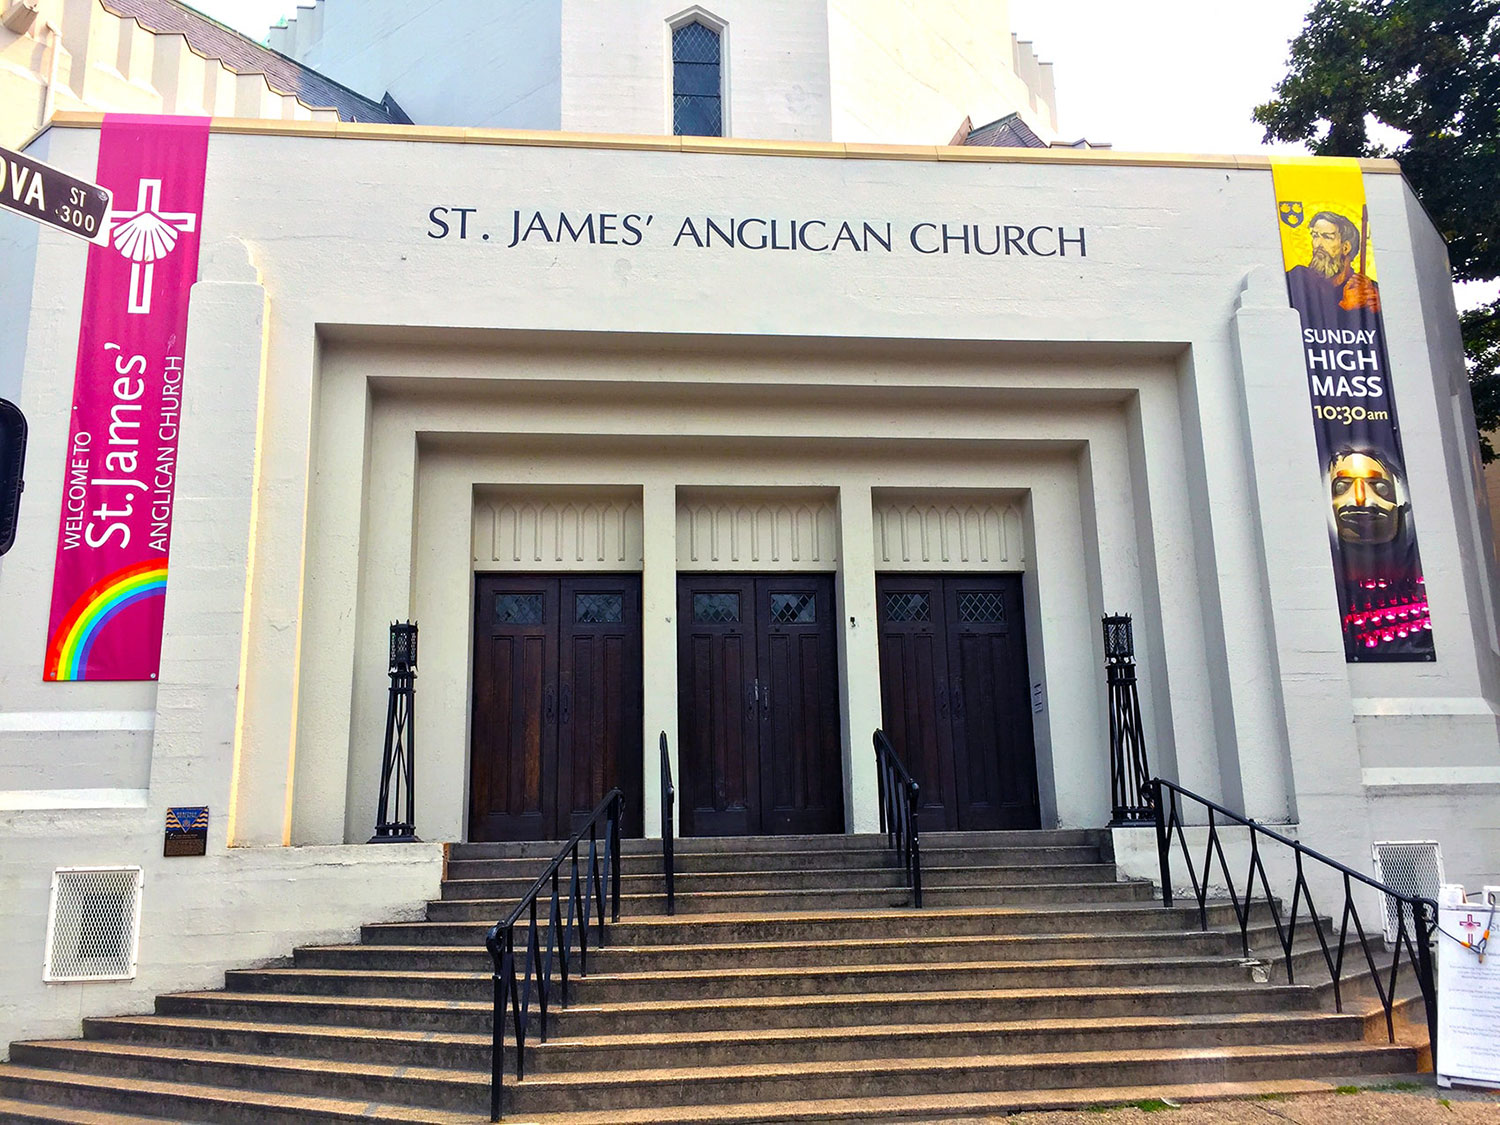 stjames-anglican-church-vancouver